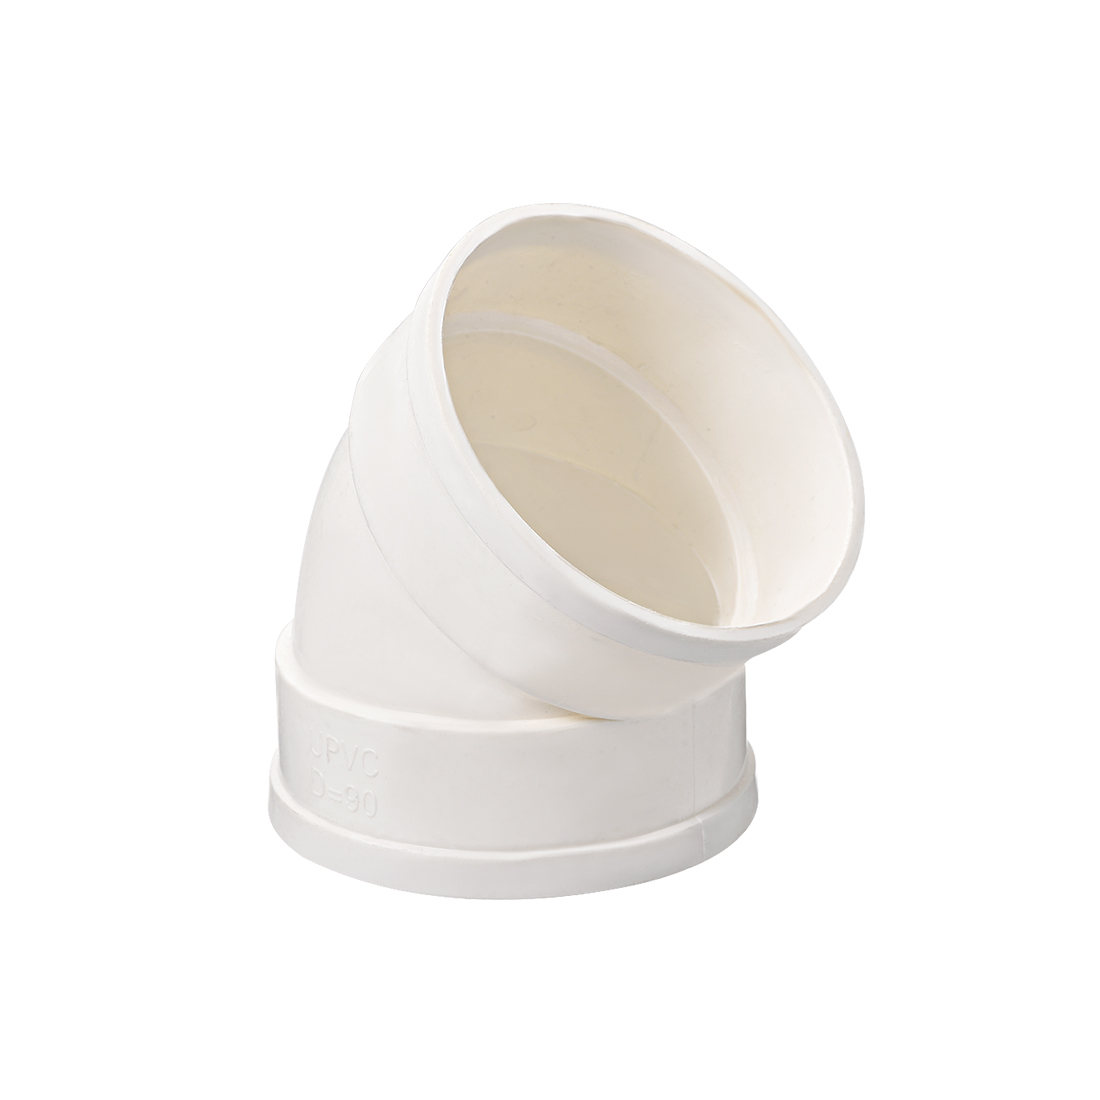 PVC Pipe Fitting 45 Degree Elbow Schedule 40 White 3-Inch Socket